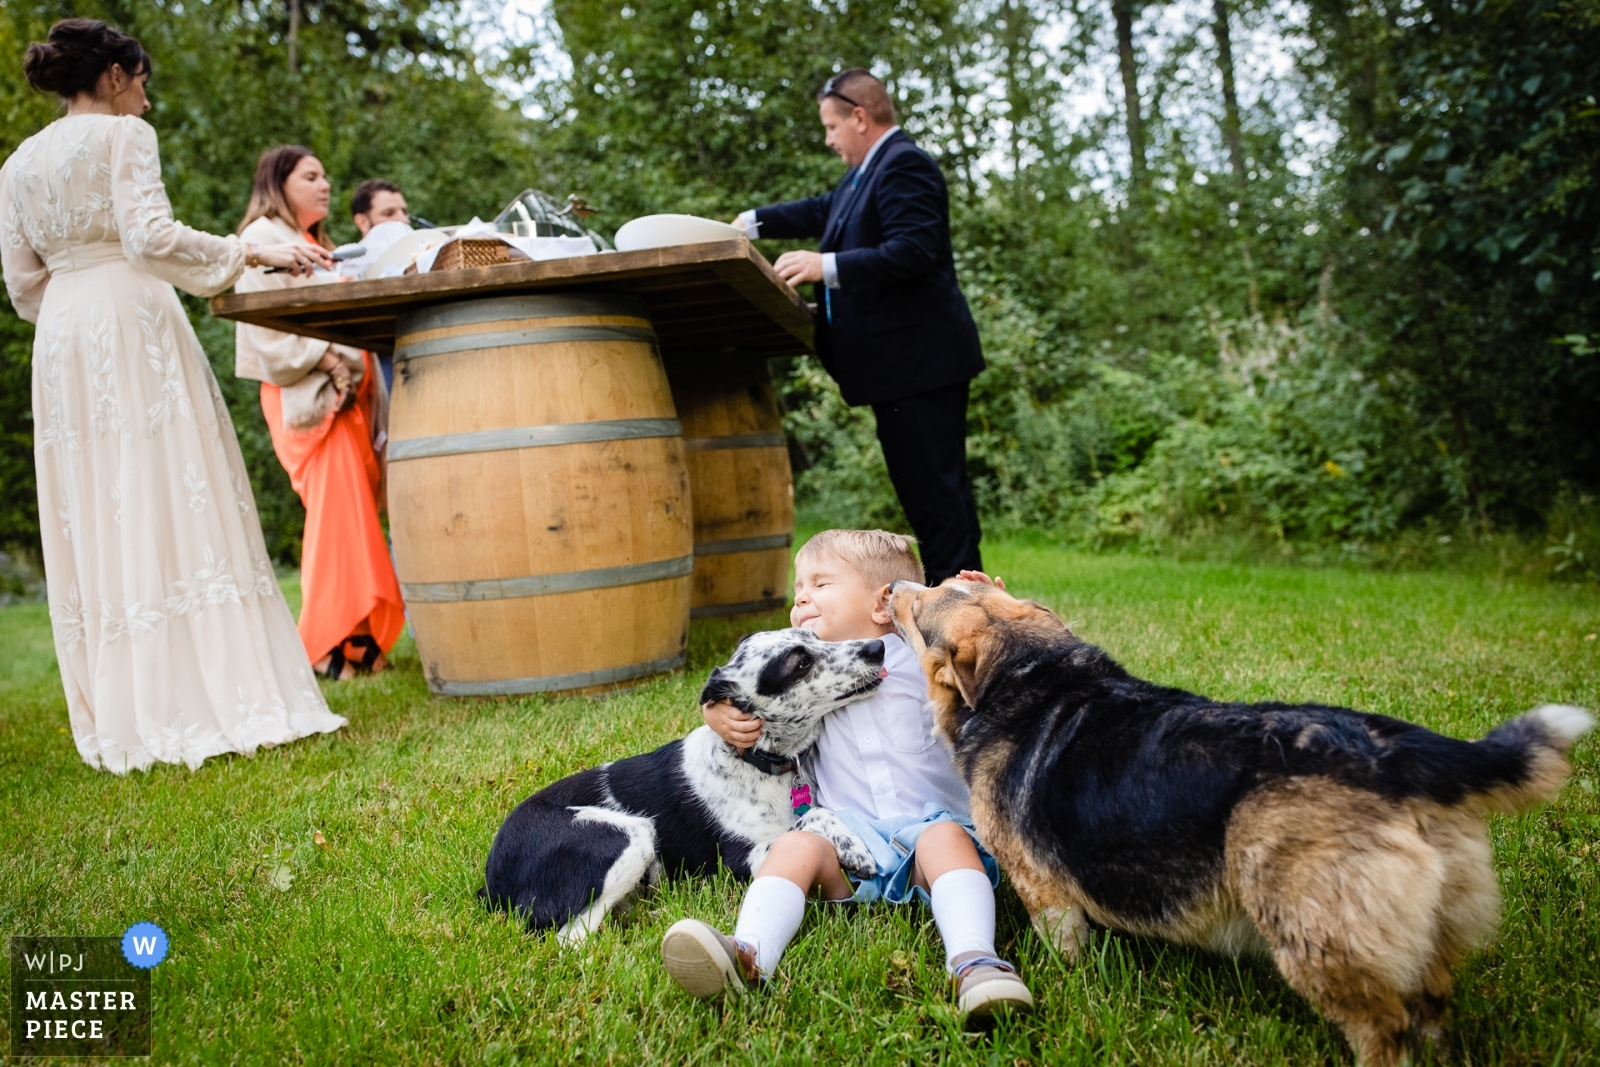 ring bearer gets attacked by licking dogs - Missoula, Montana Wedding Photography -  | Stryker, Montana